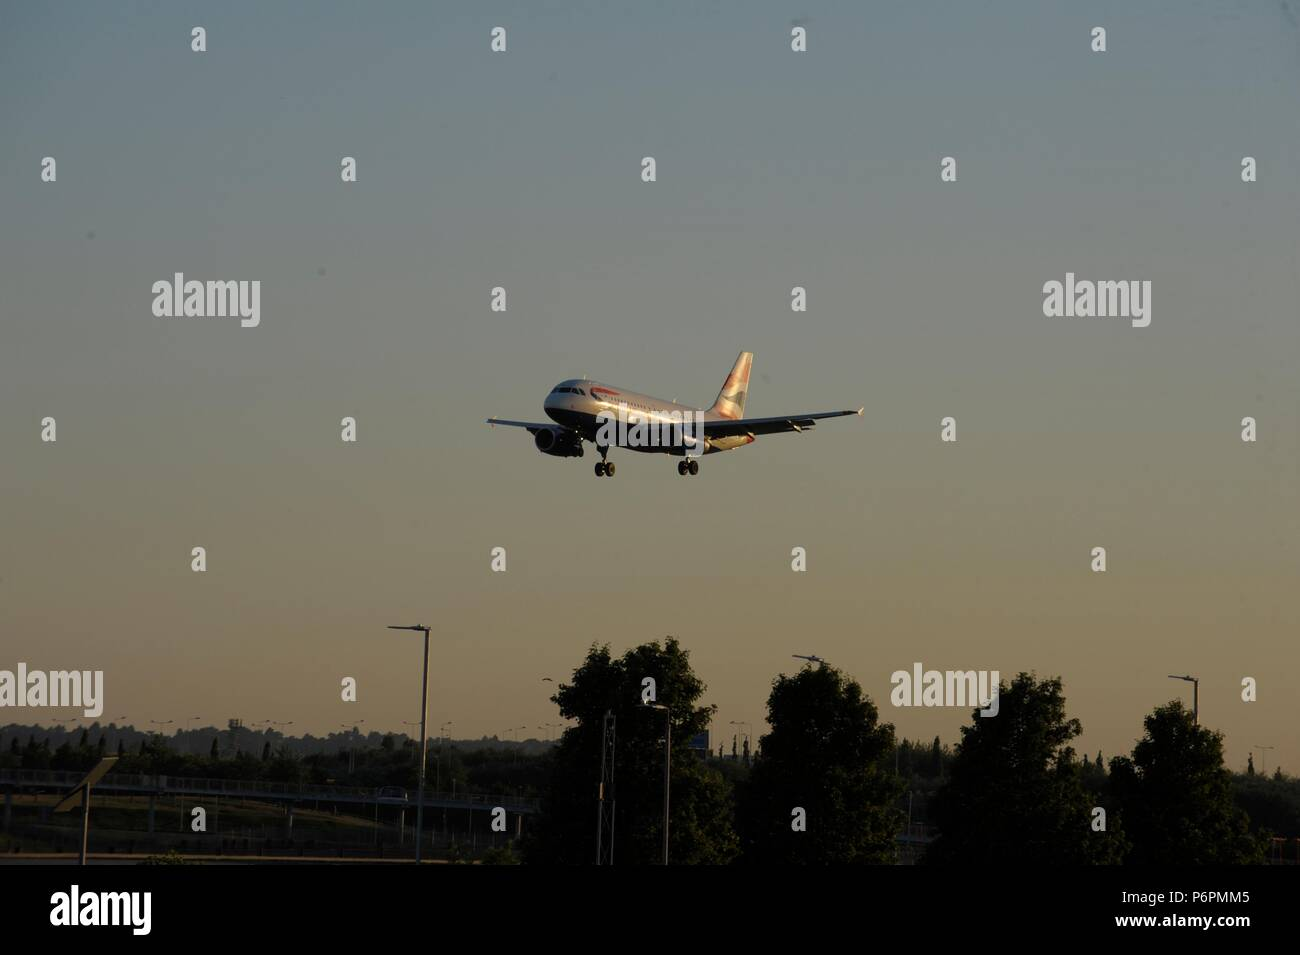 Heathrow airport - Stock Image